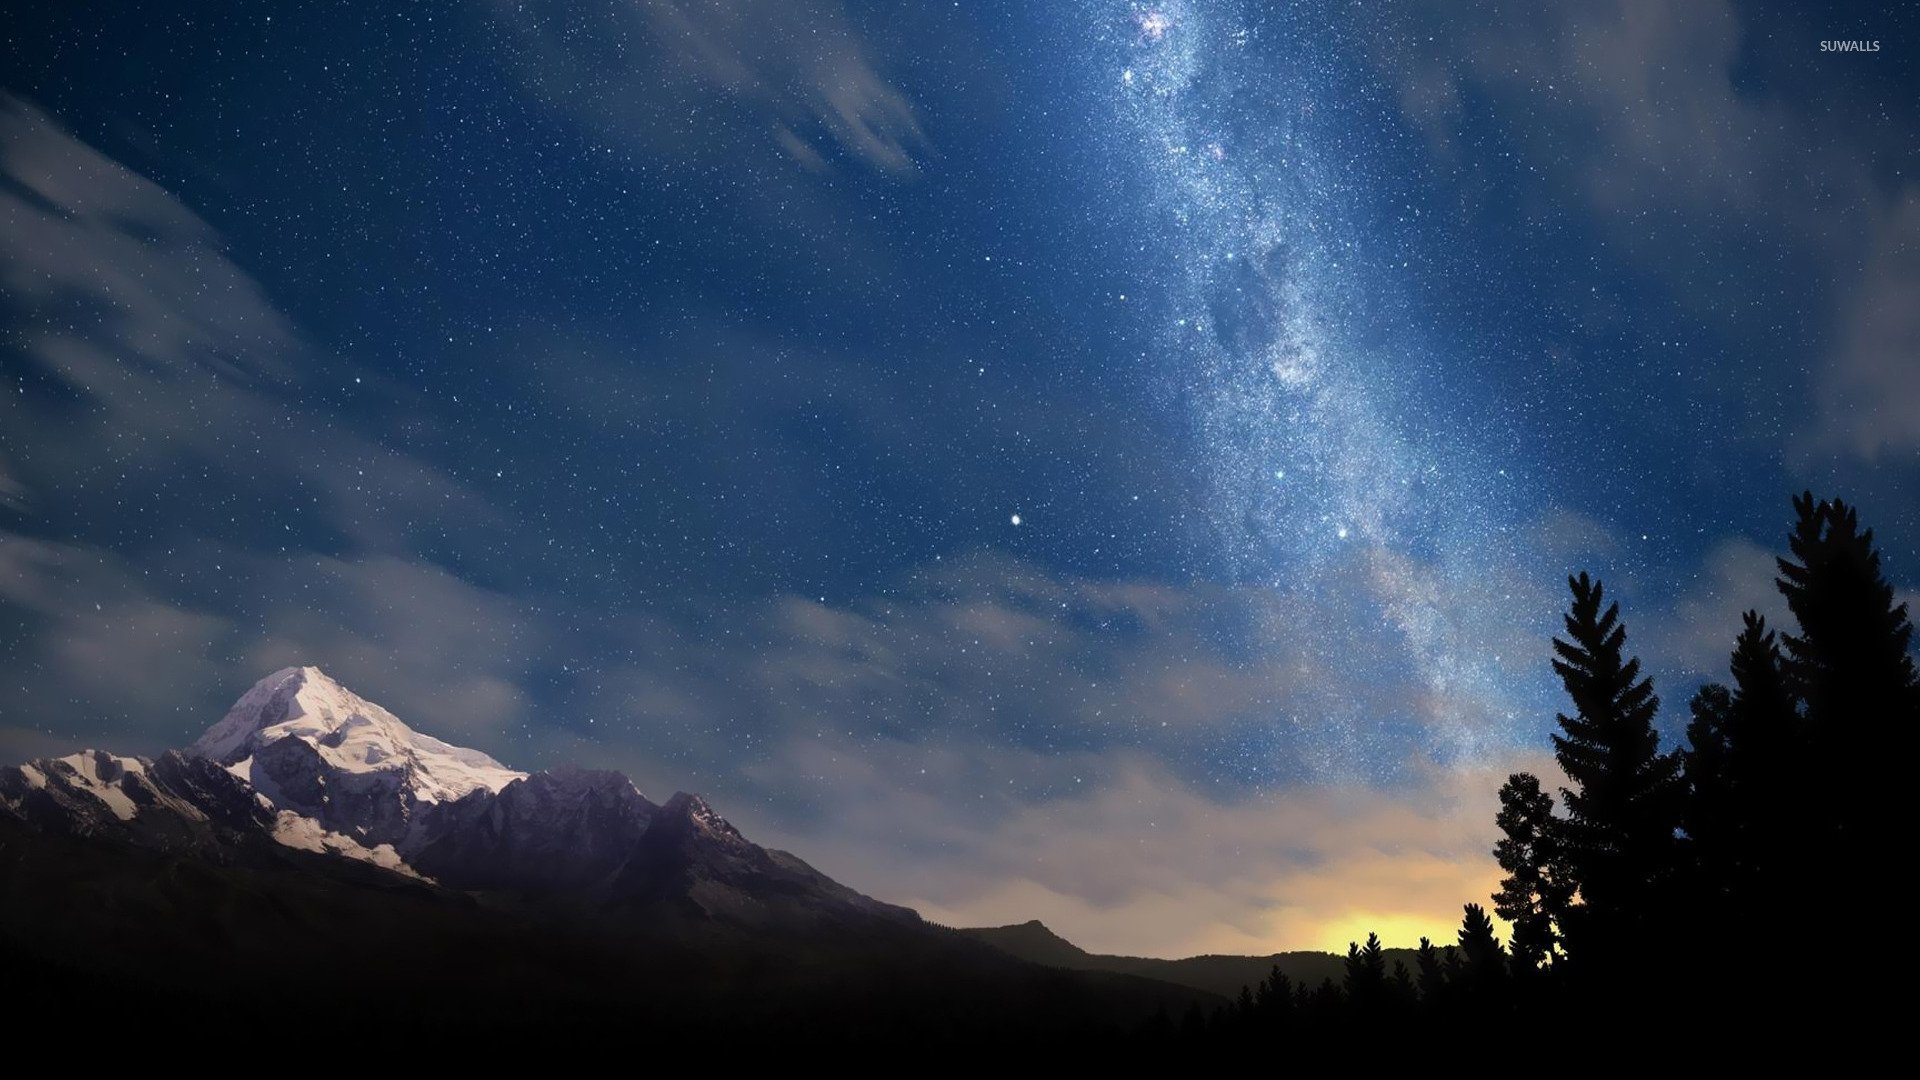 Starry night sky wallpaper   Nature wallpapers   14836 1920x1080